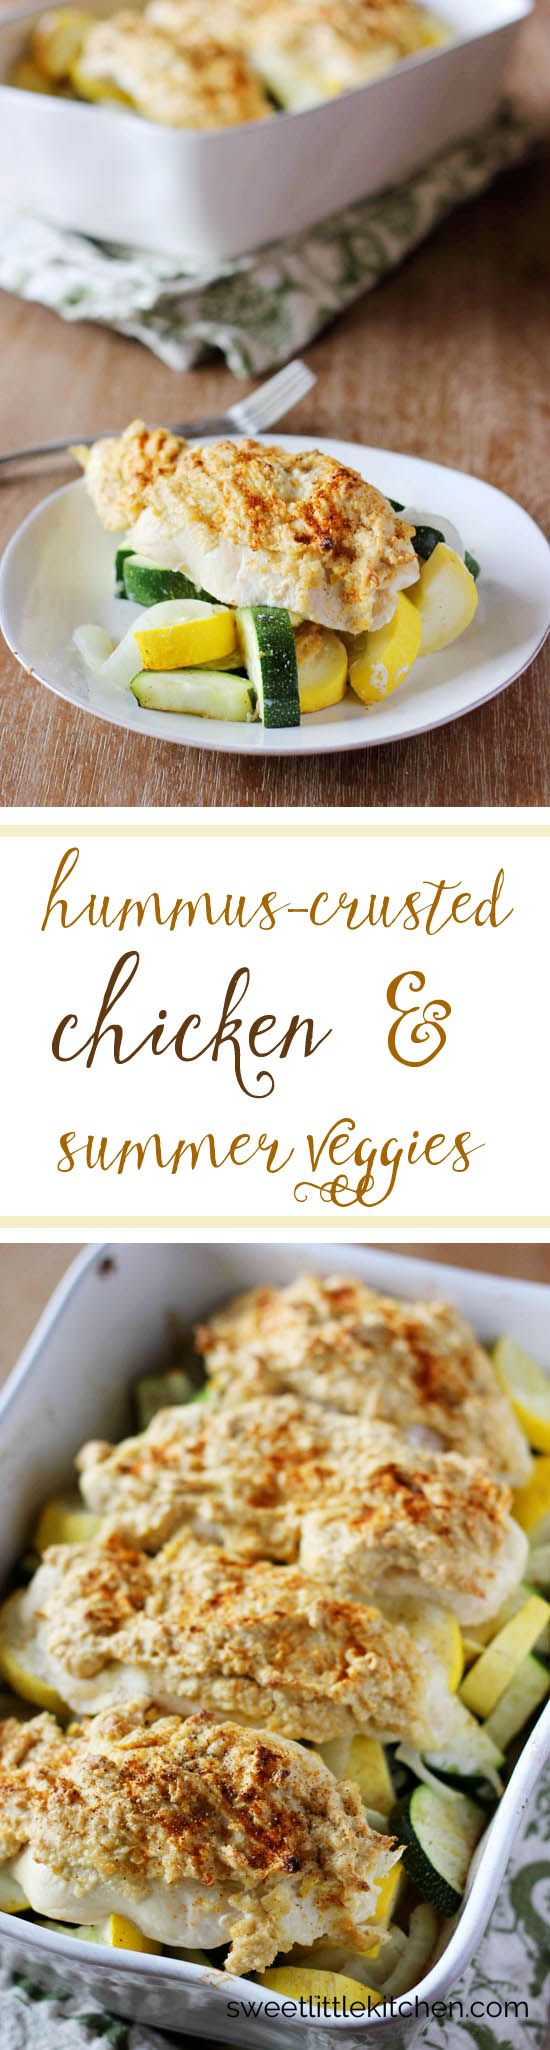 Hummus-Crusted Chicken and Summer Veggies is a delicious, one-dish meal. It's a perfect weeknight meal the whole family will love!